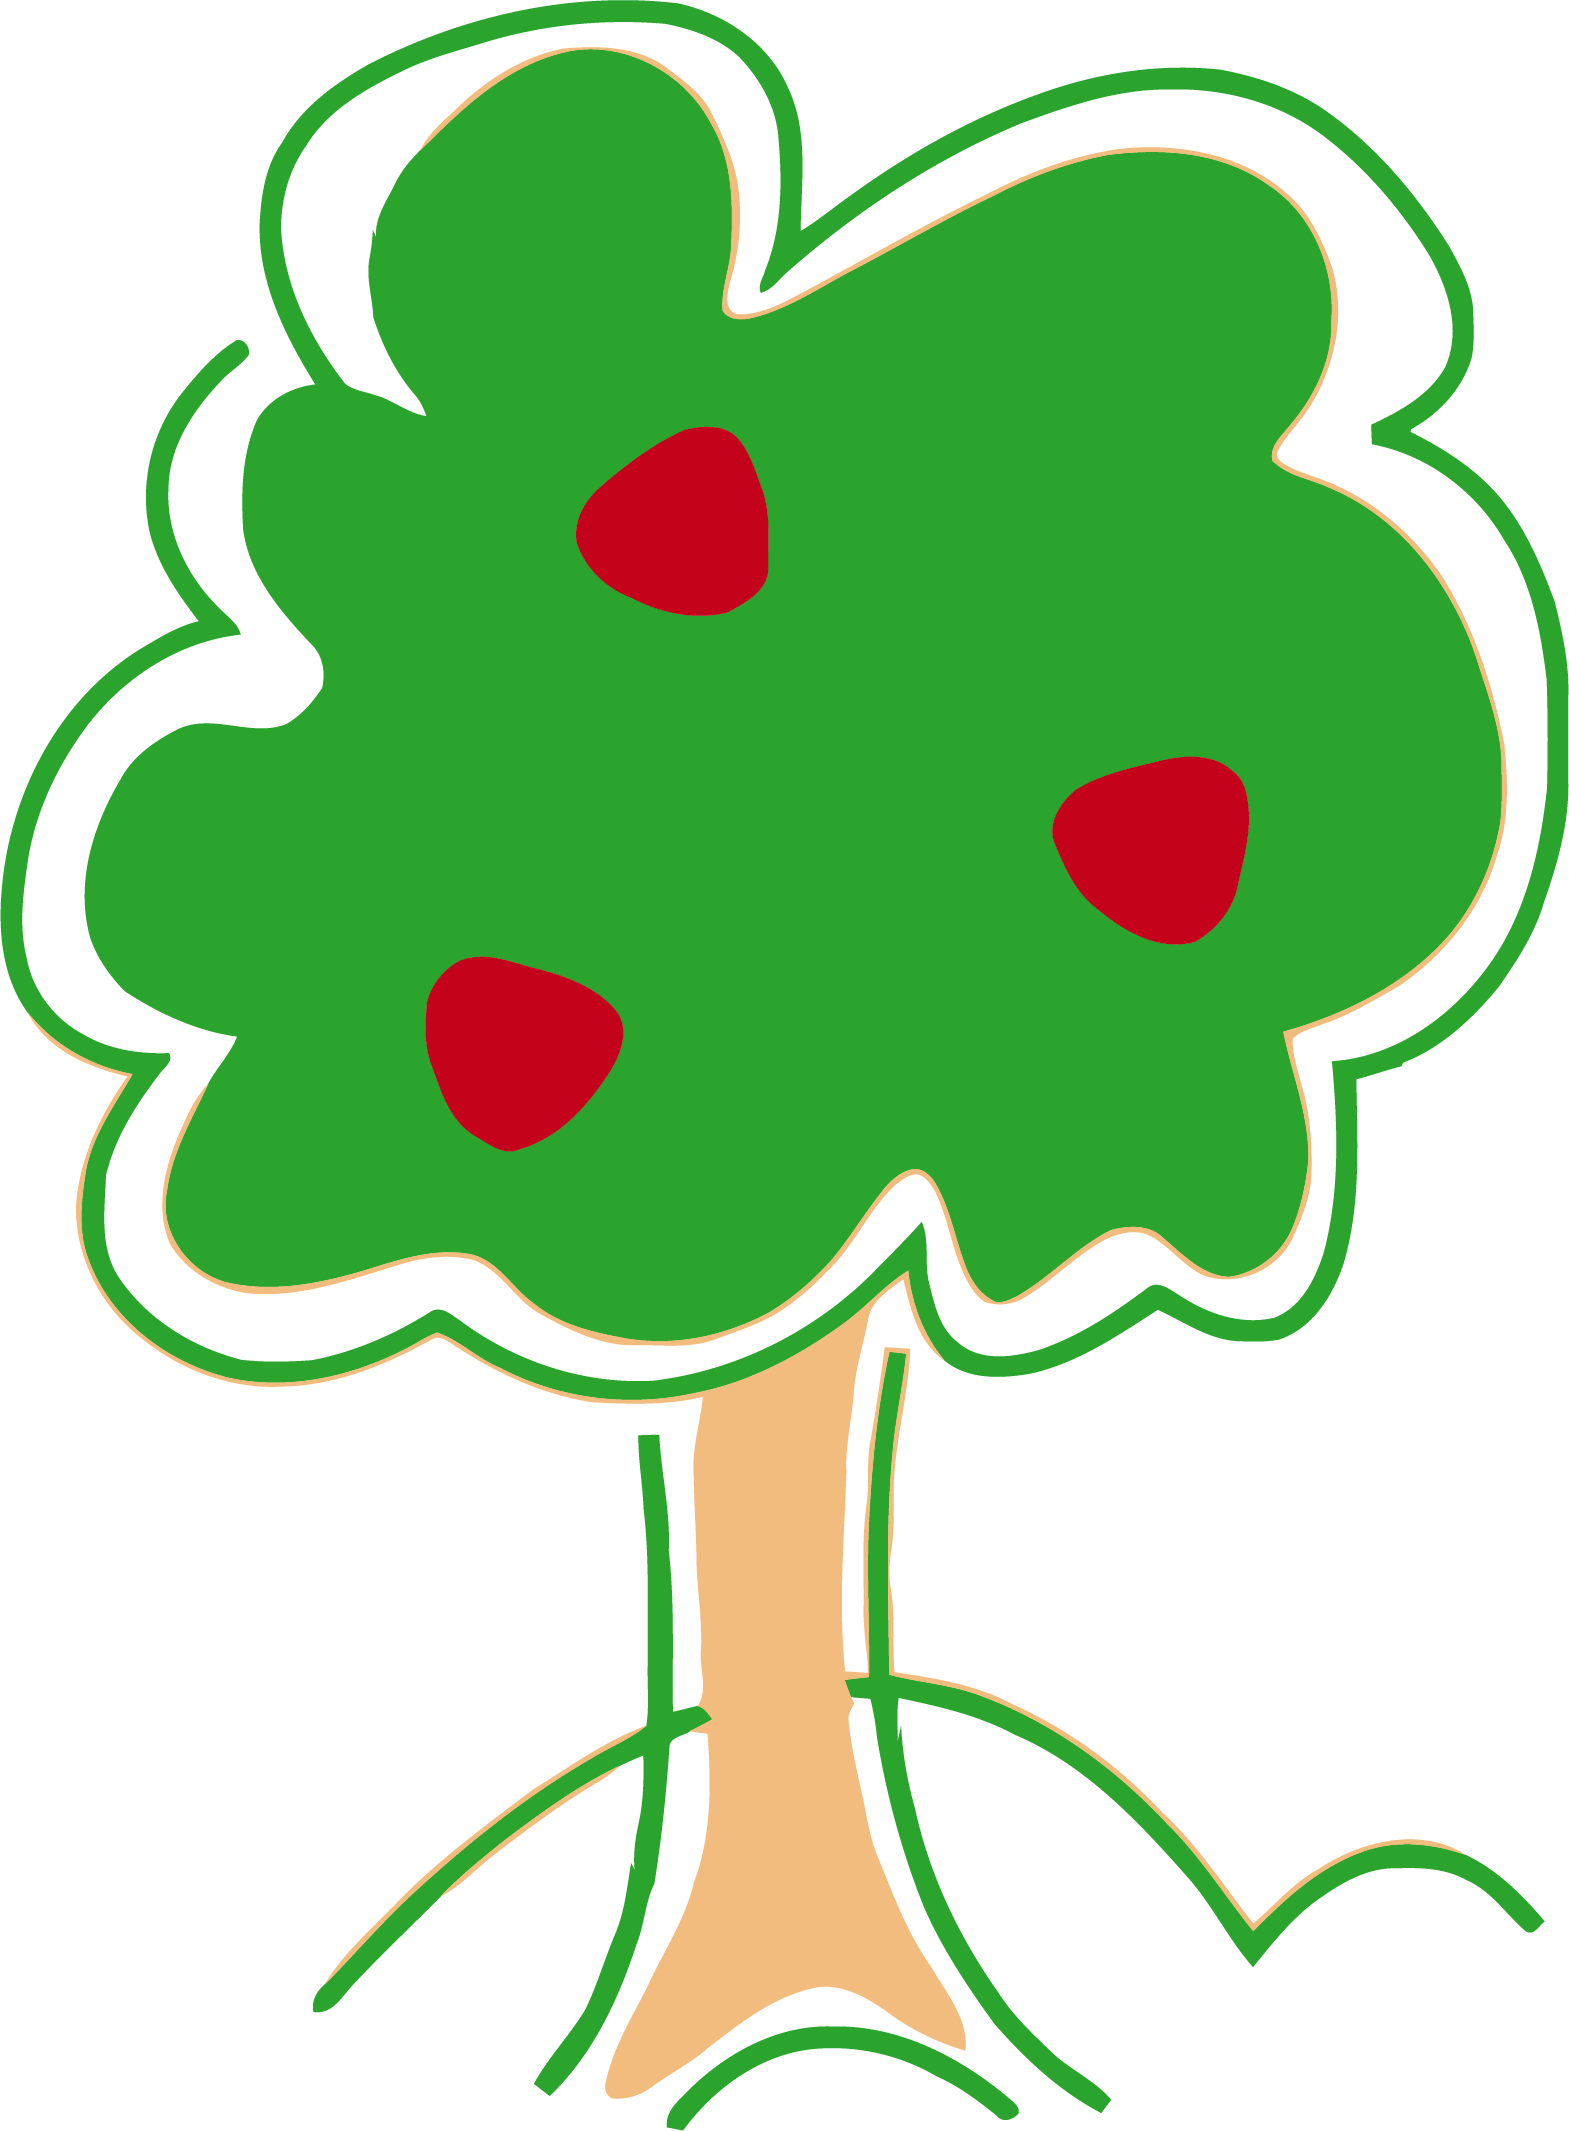 Cute tree clipart image stock Cute Apple Tree Clipart - Vector And Clip Art Inspiration • image stock